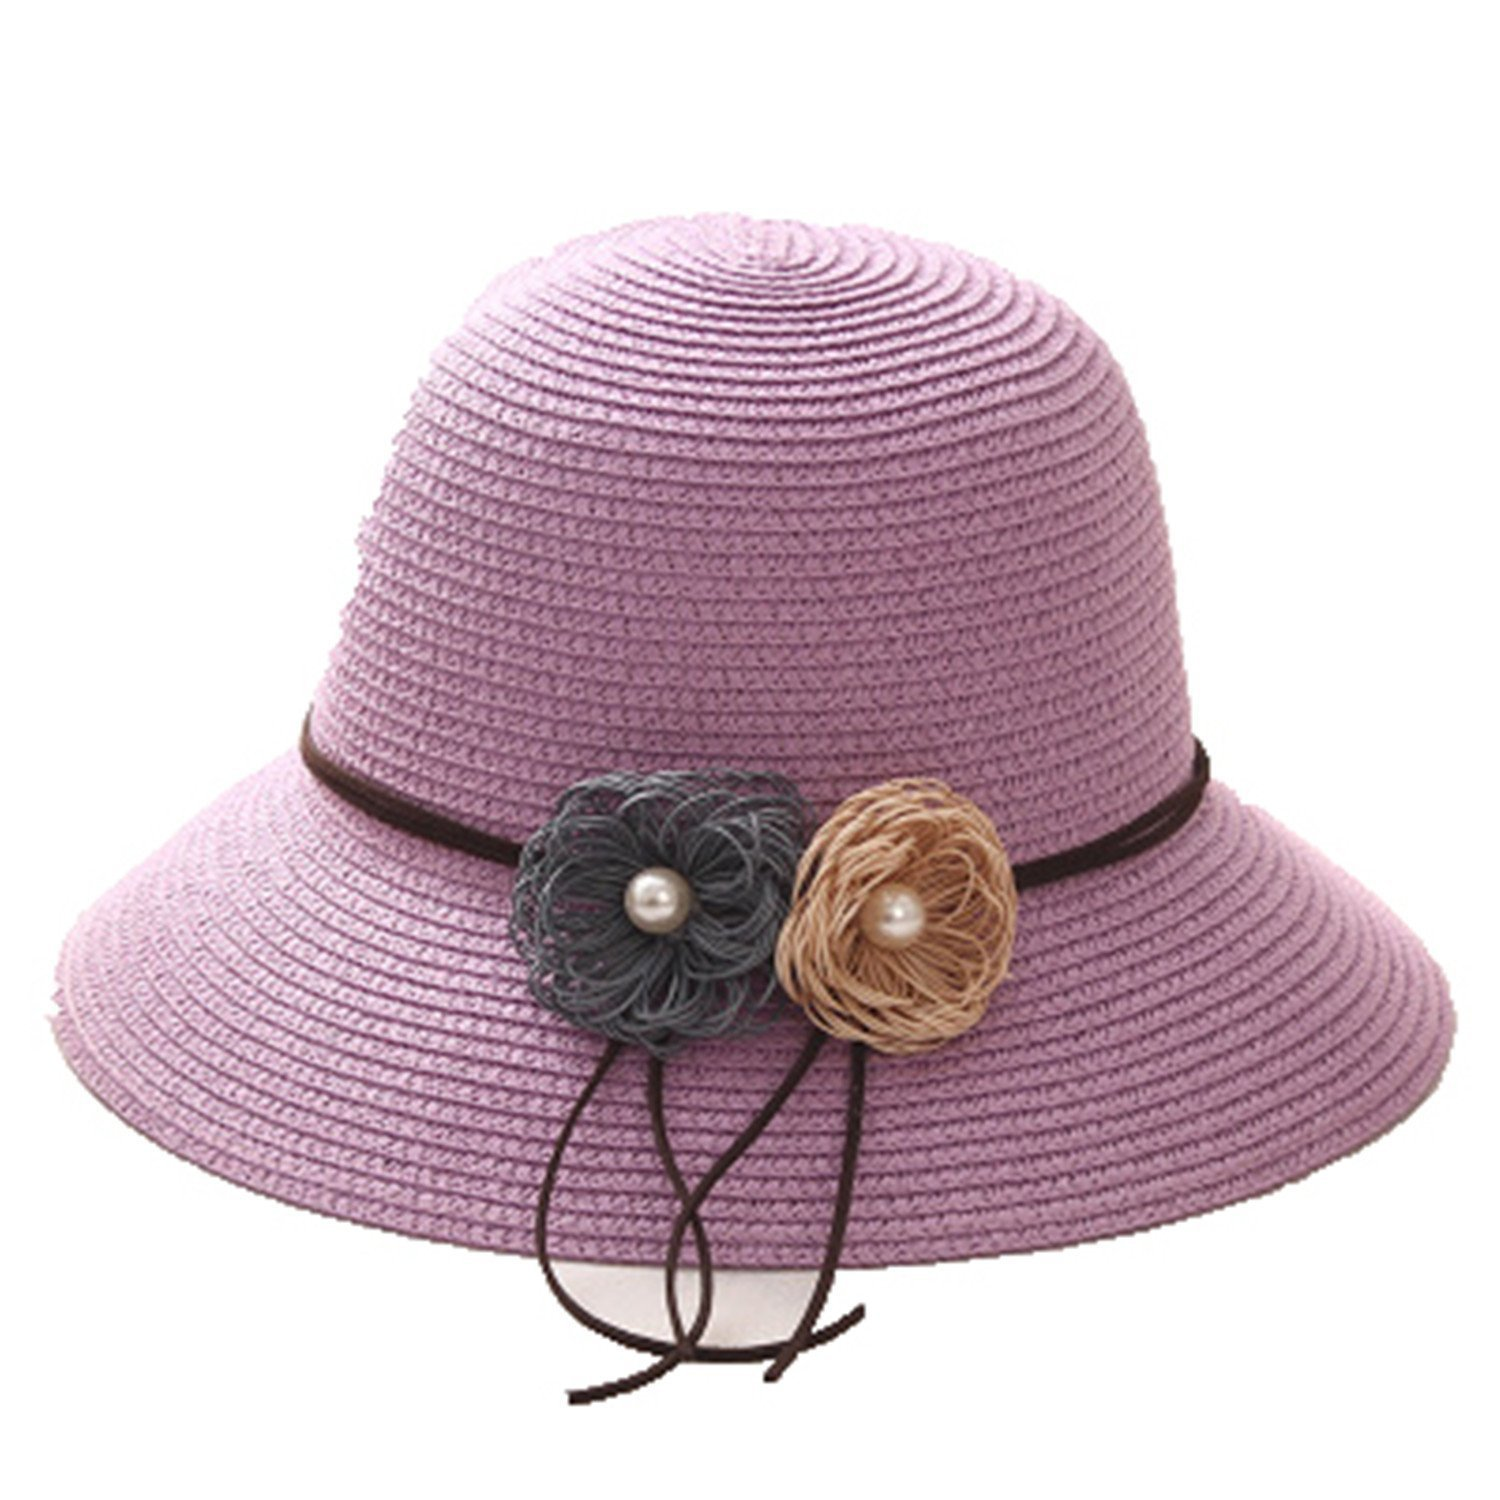 Women Hats with Flower Lady Summer Beach Sun Hats Solid Female Straw Bucket Hats Packable Wide Brim Hats,Purple